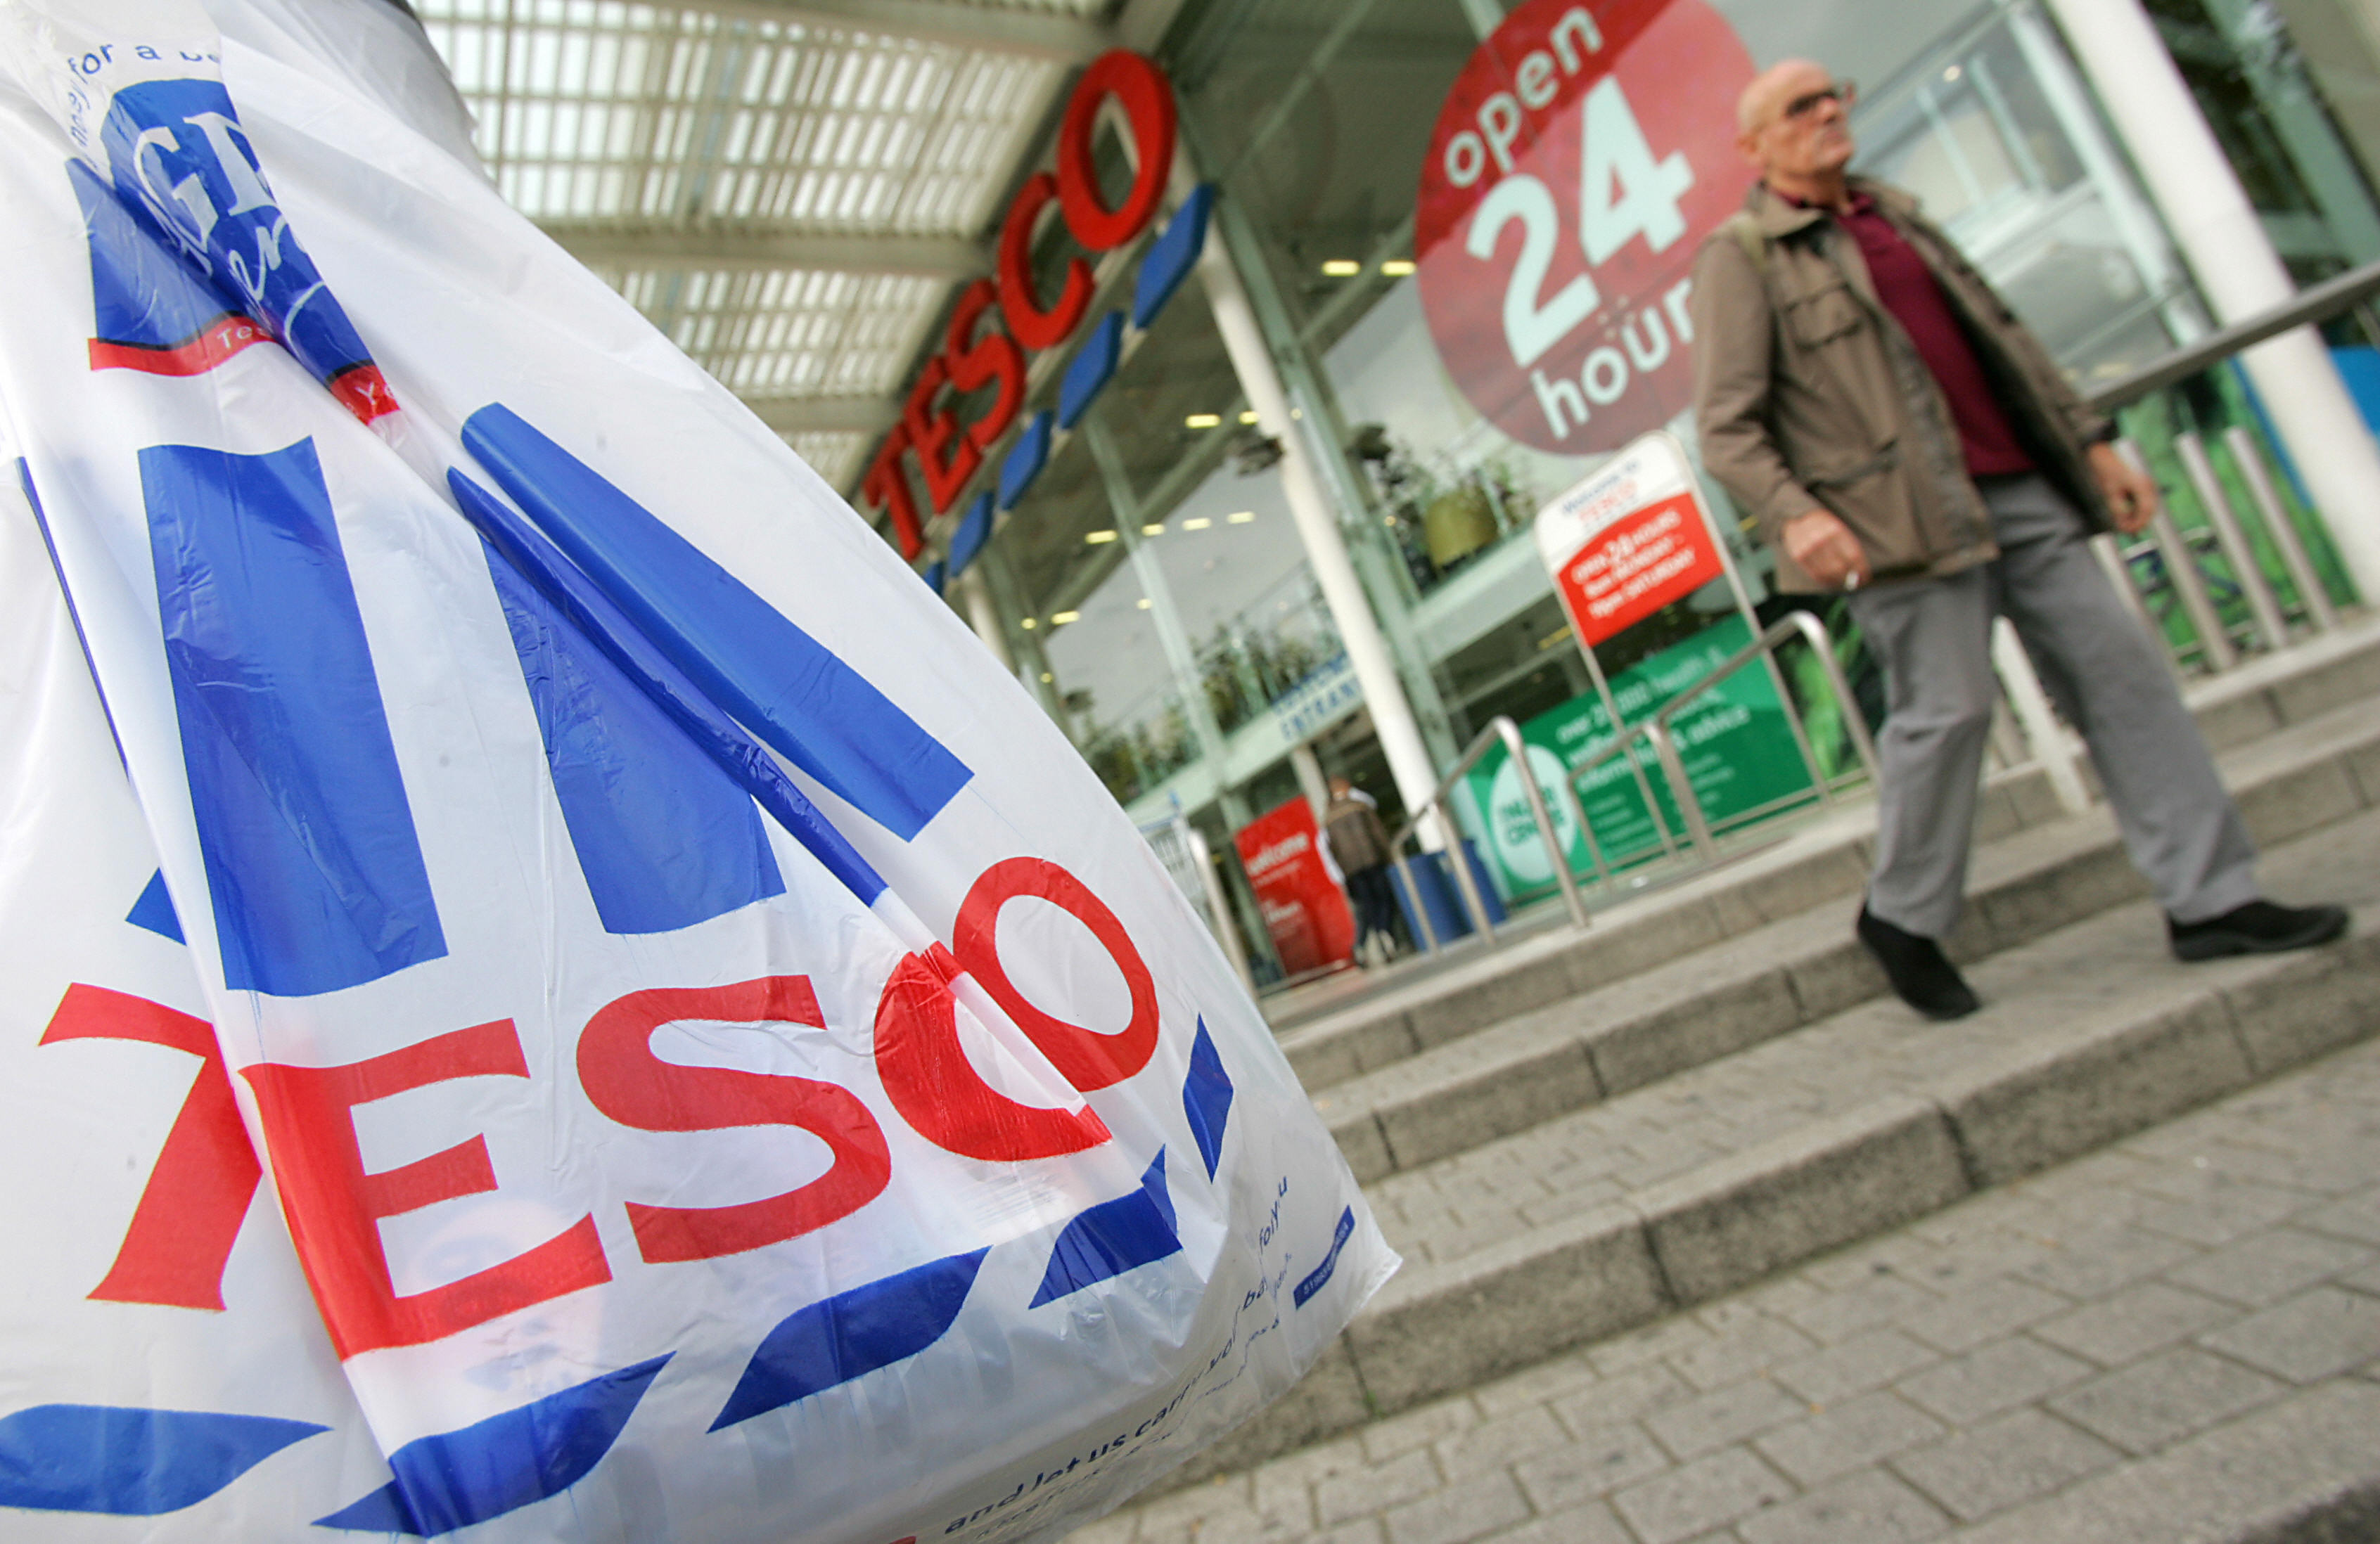 Customers leave a Tesco supermarket in w